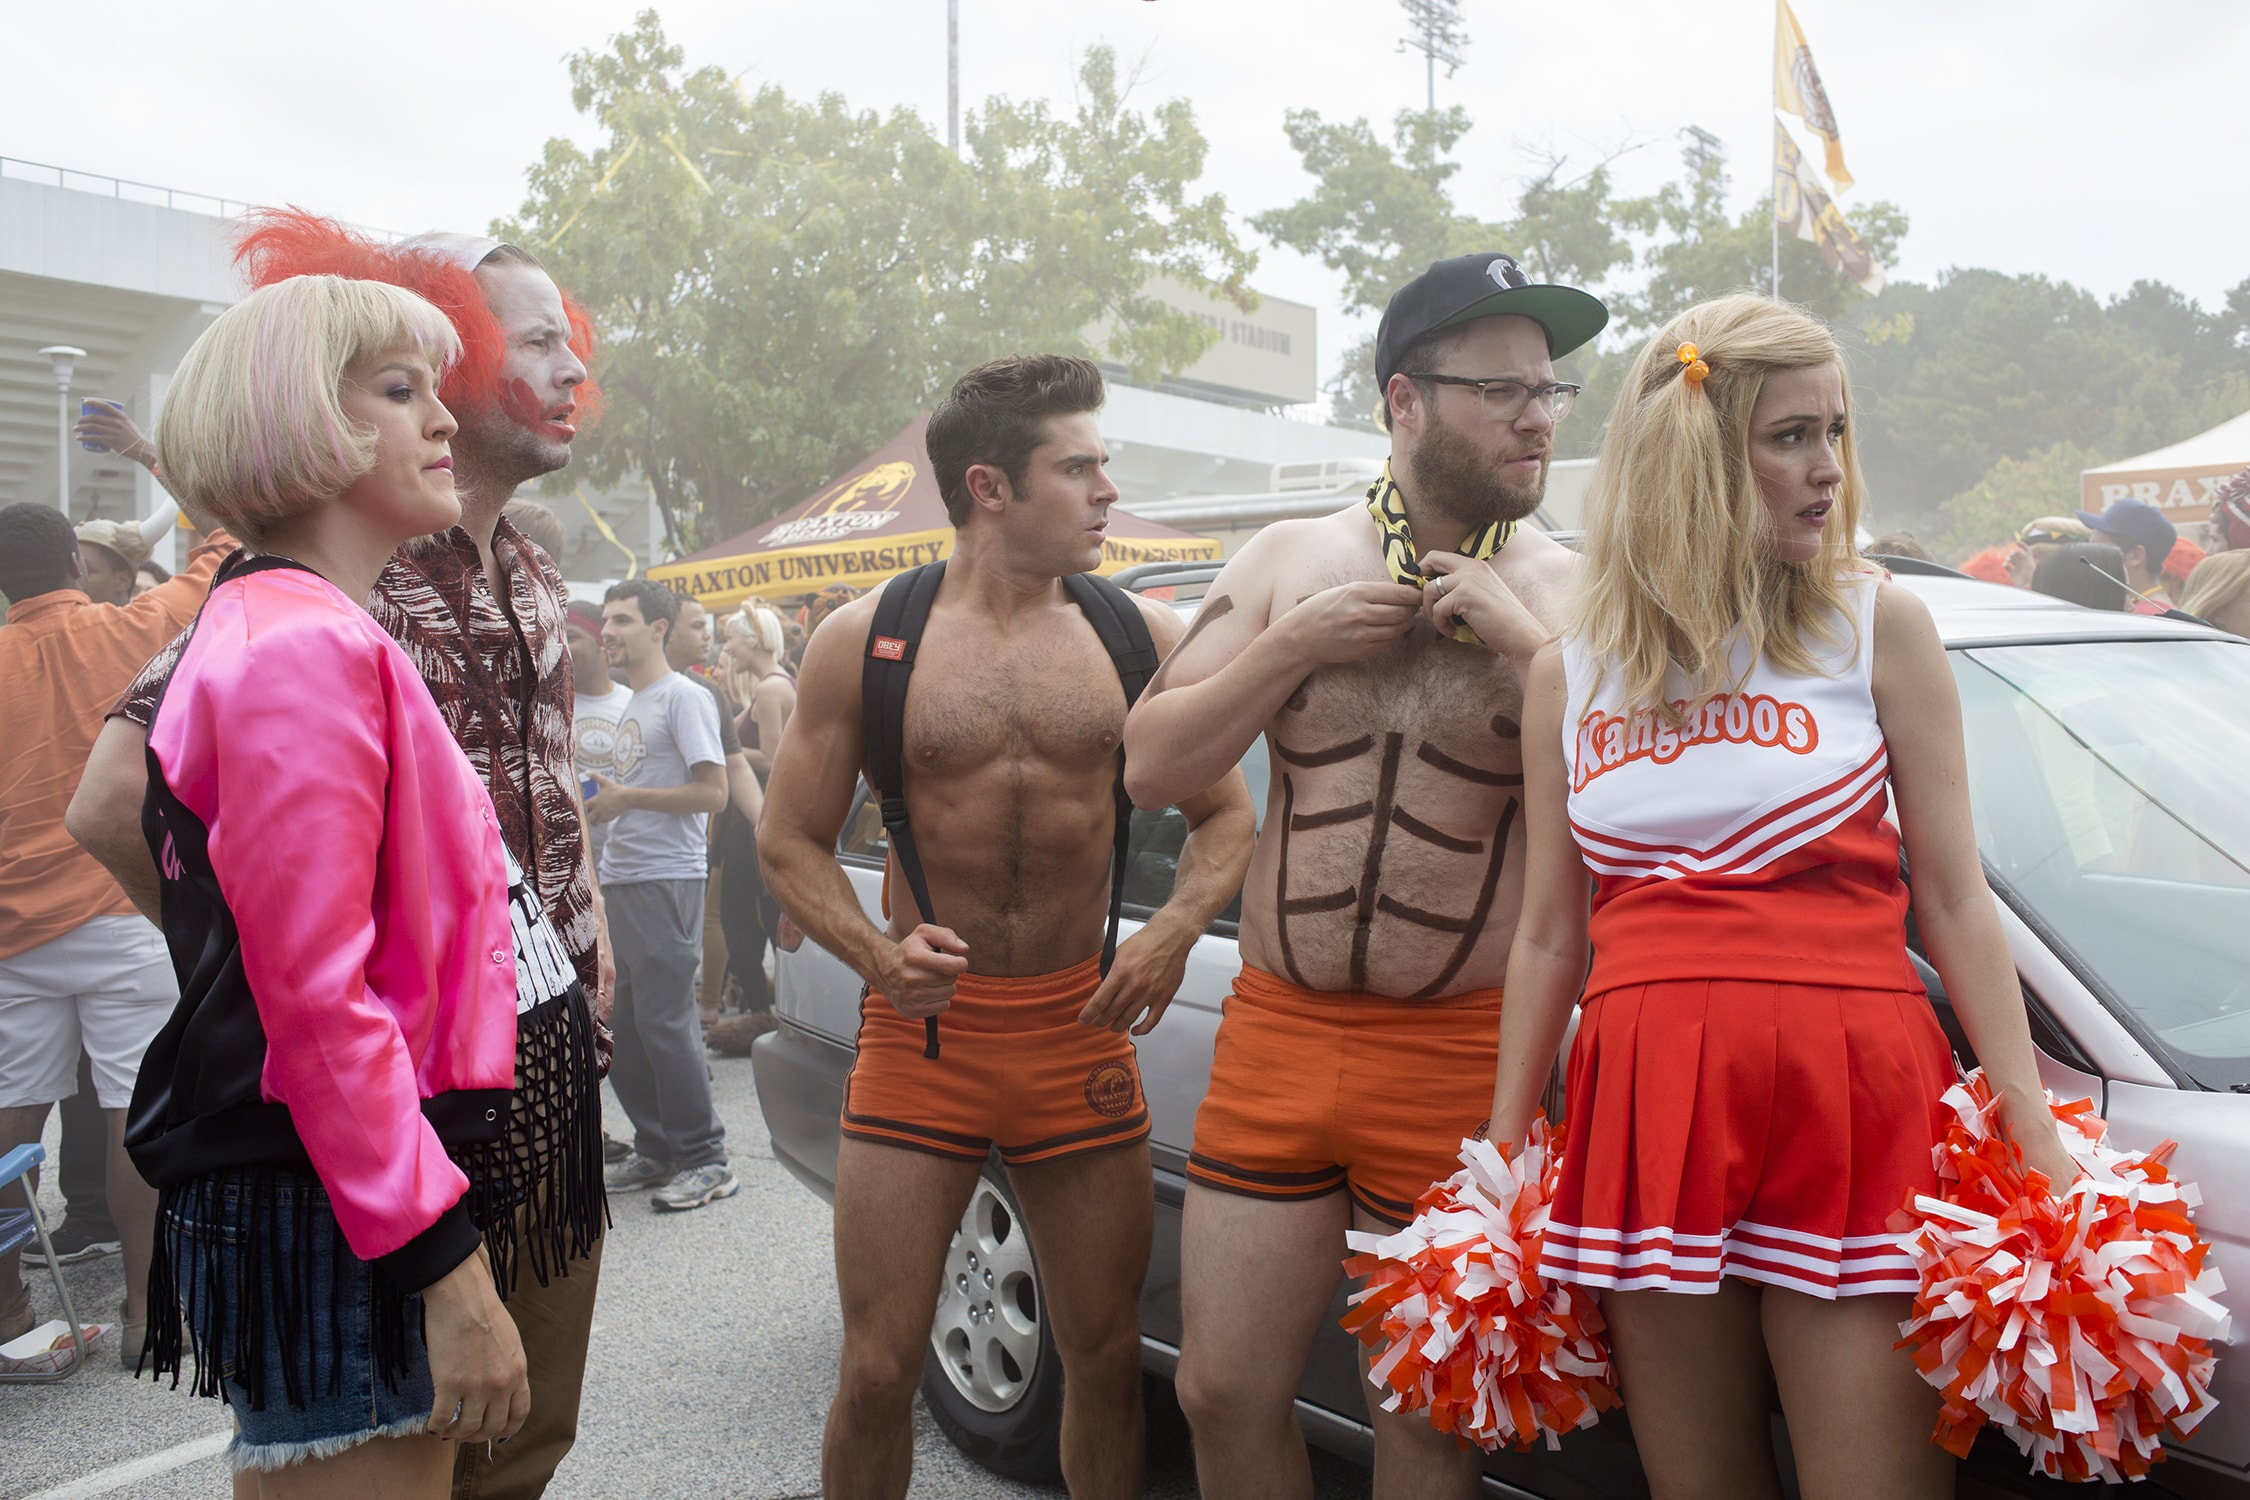 Neighbors 2: Sorority Rising Widescreen for desktop